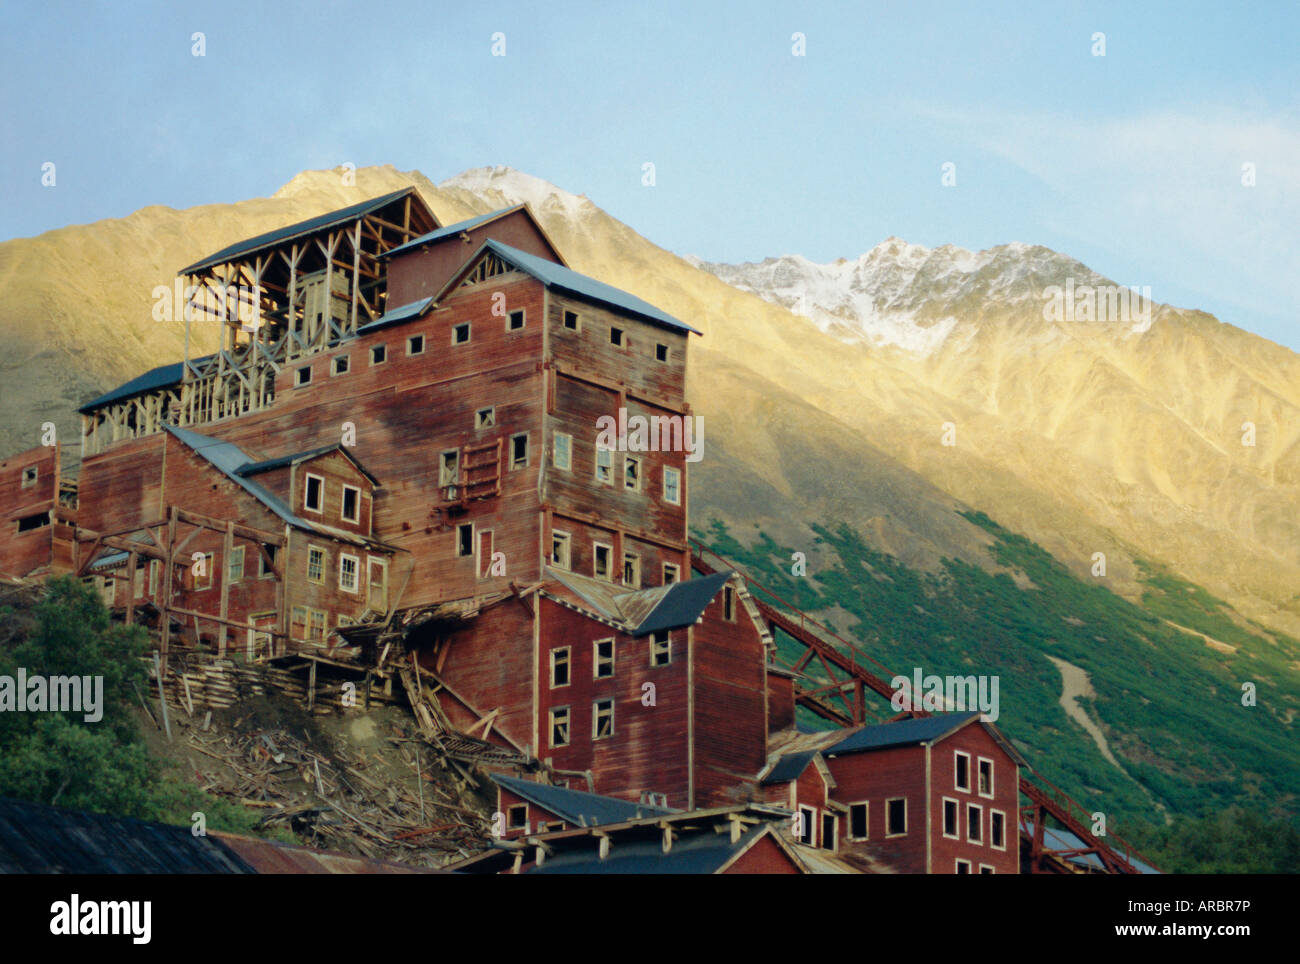 Old copper mine buildings, preserved national historic site, Kennecott, Wrangel Mountains, Alaska, USA, North America - Stock Image